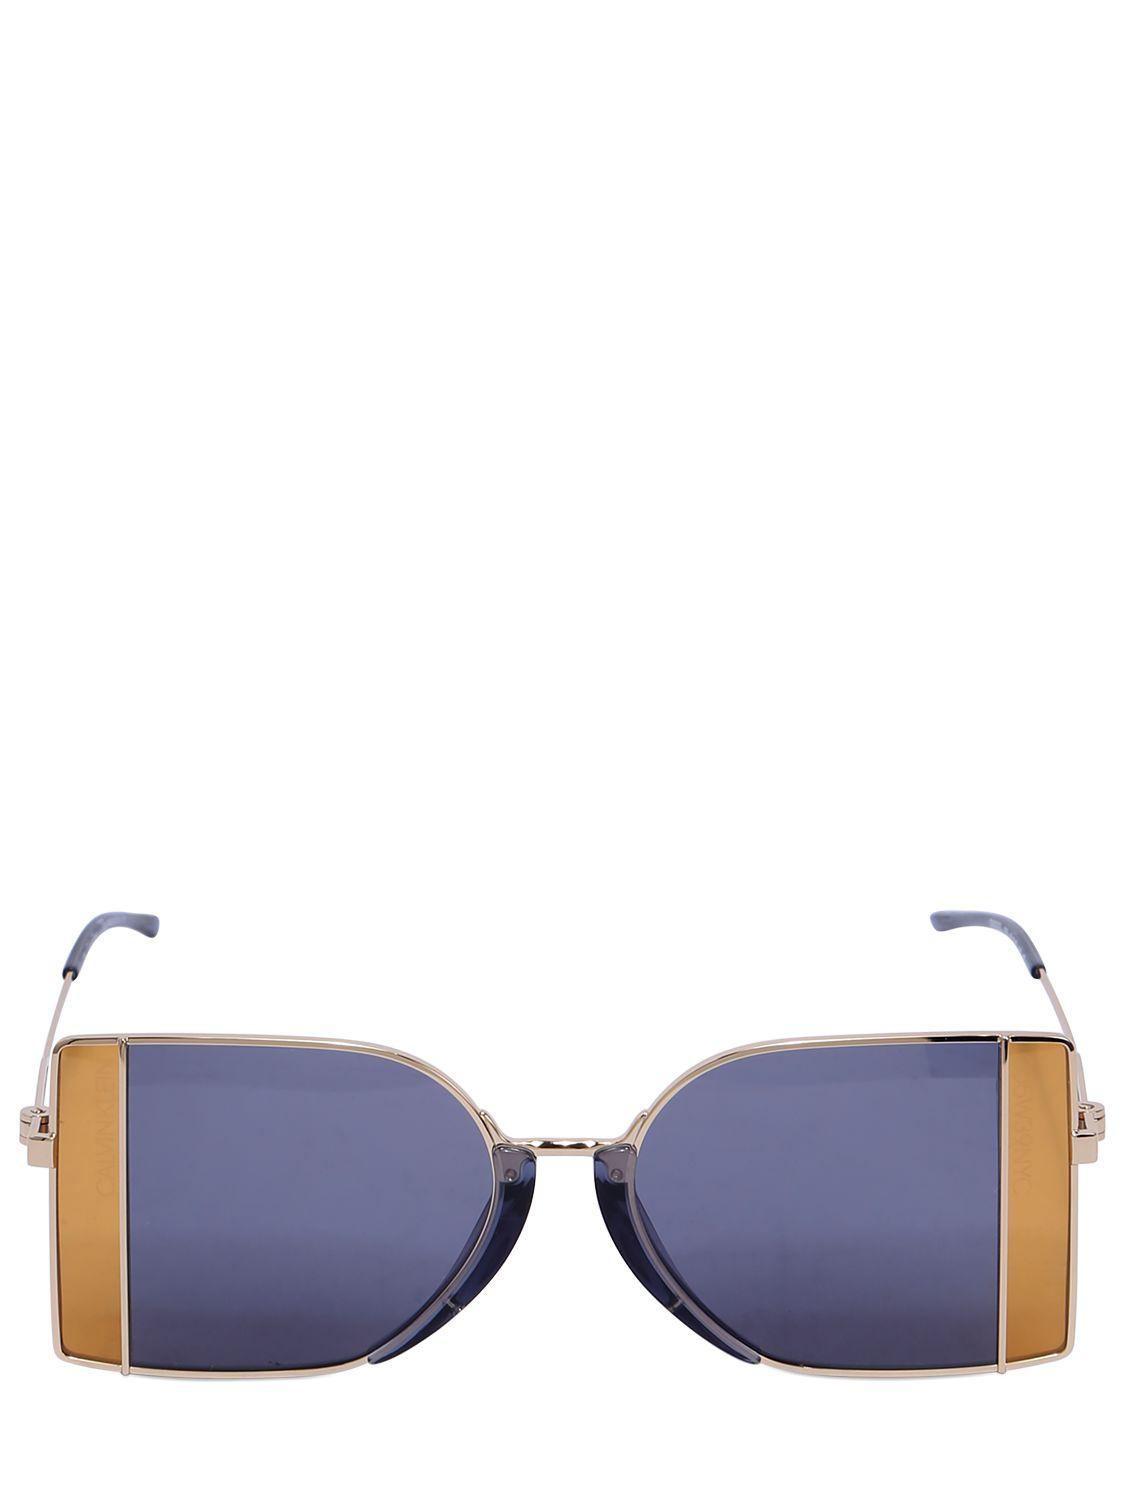 9c3eccce510 CALVIN KLEIN 205W39NYC Squared See-thru Lens Sunglasses in Blue - Lyst